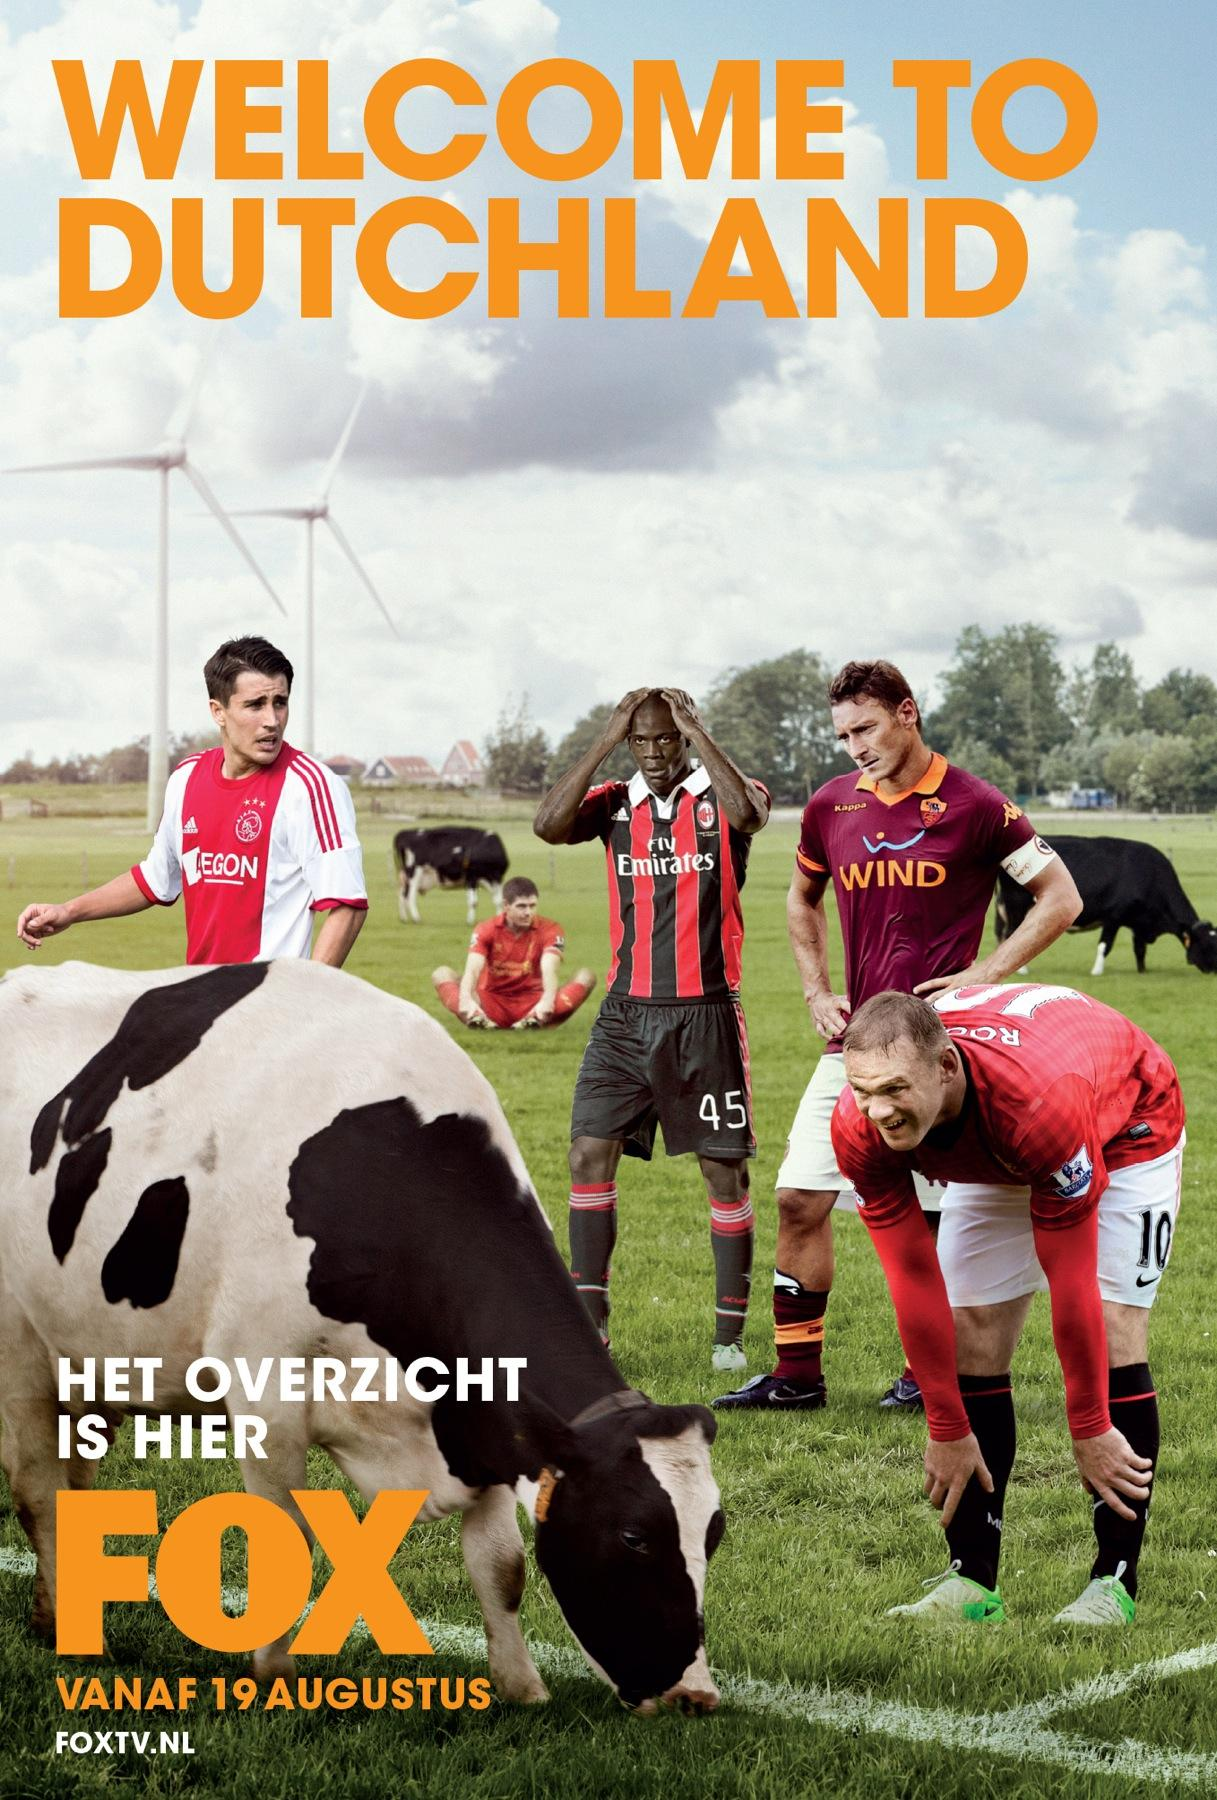 Fox Print Ad -  Welcome to Dutchland, 3